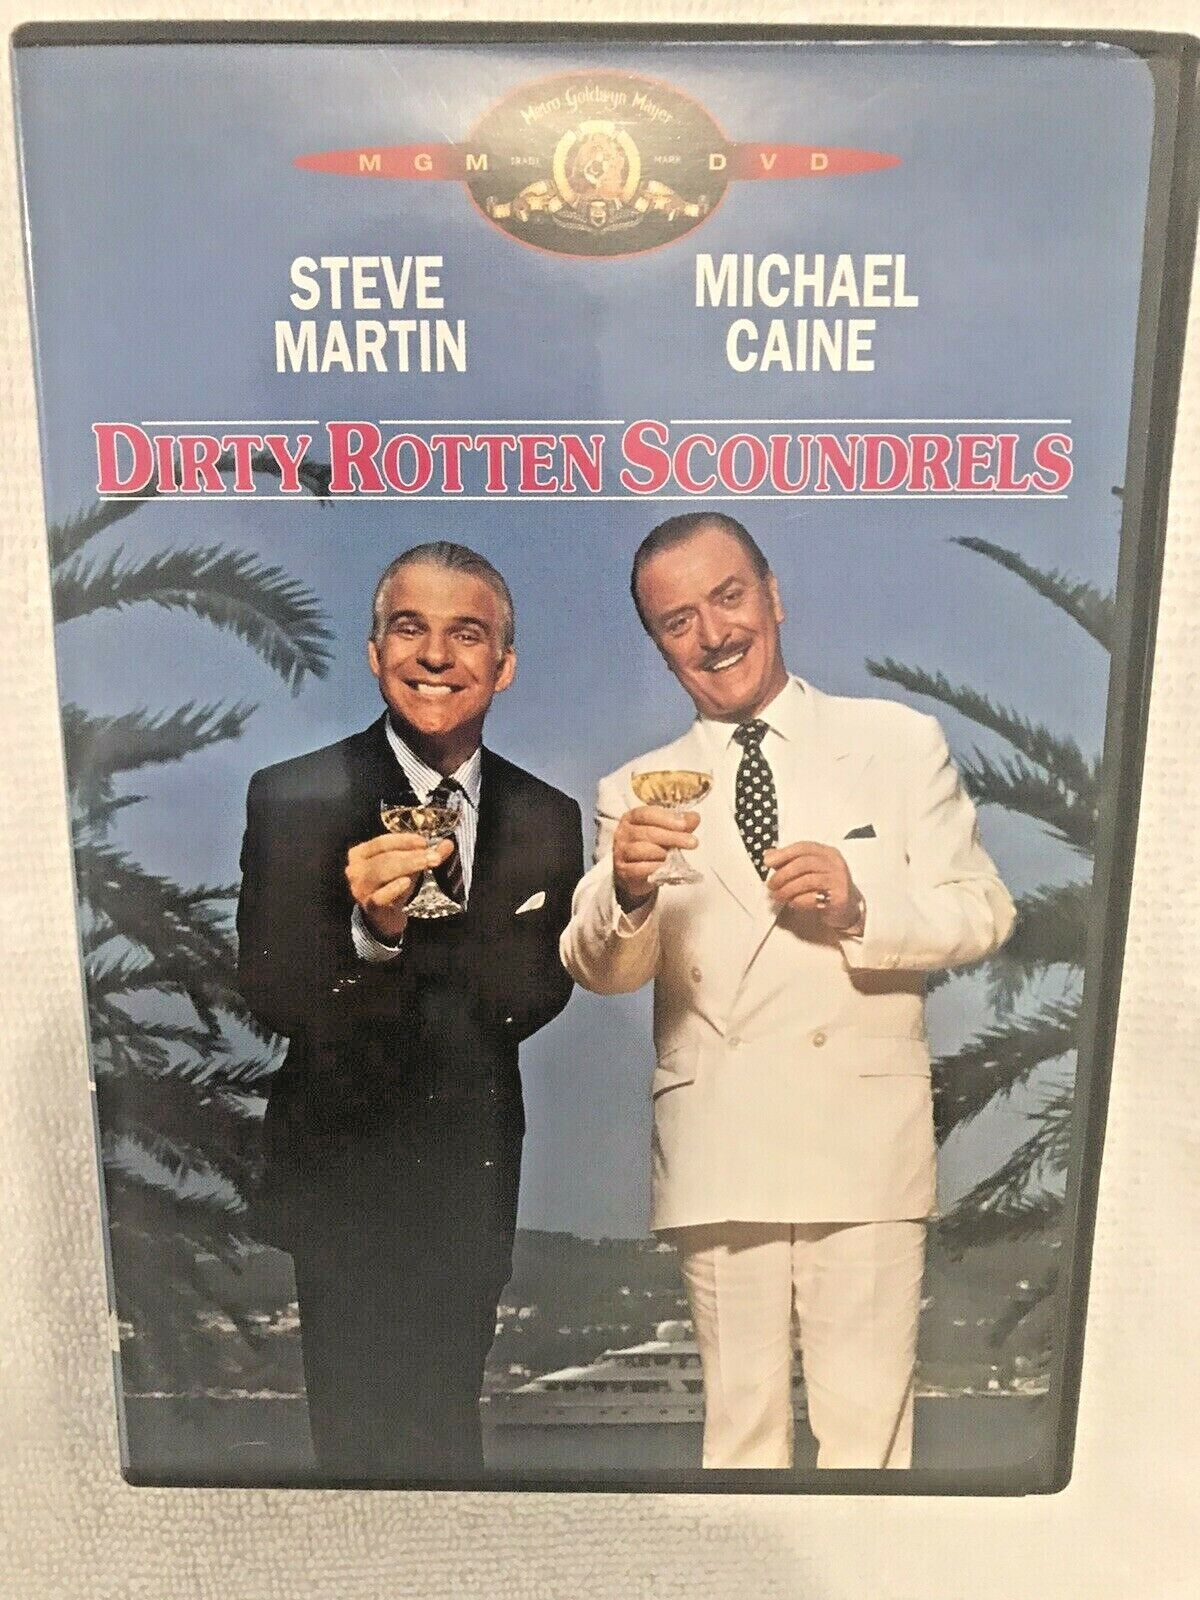 Dirty Rotten Scoundrels DVD, 2001 Steve Martin Michael Caine Comedy - $4.95